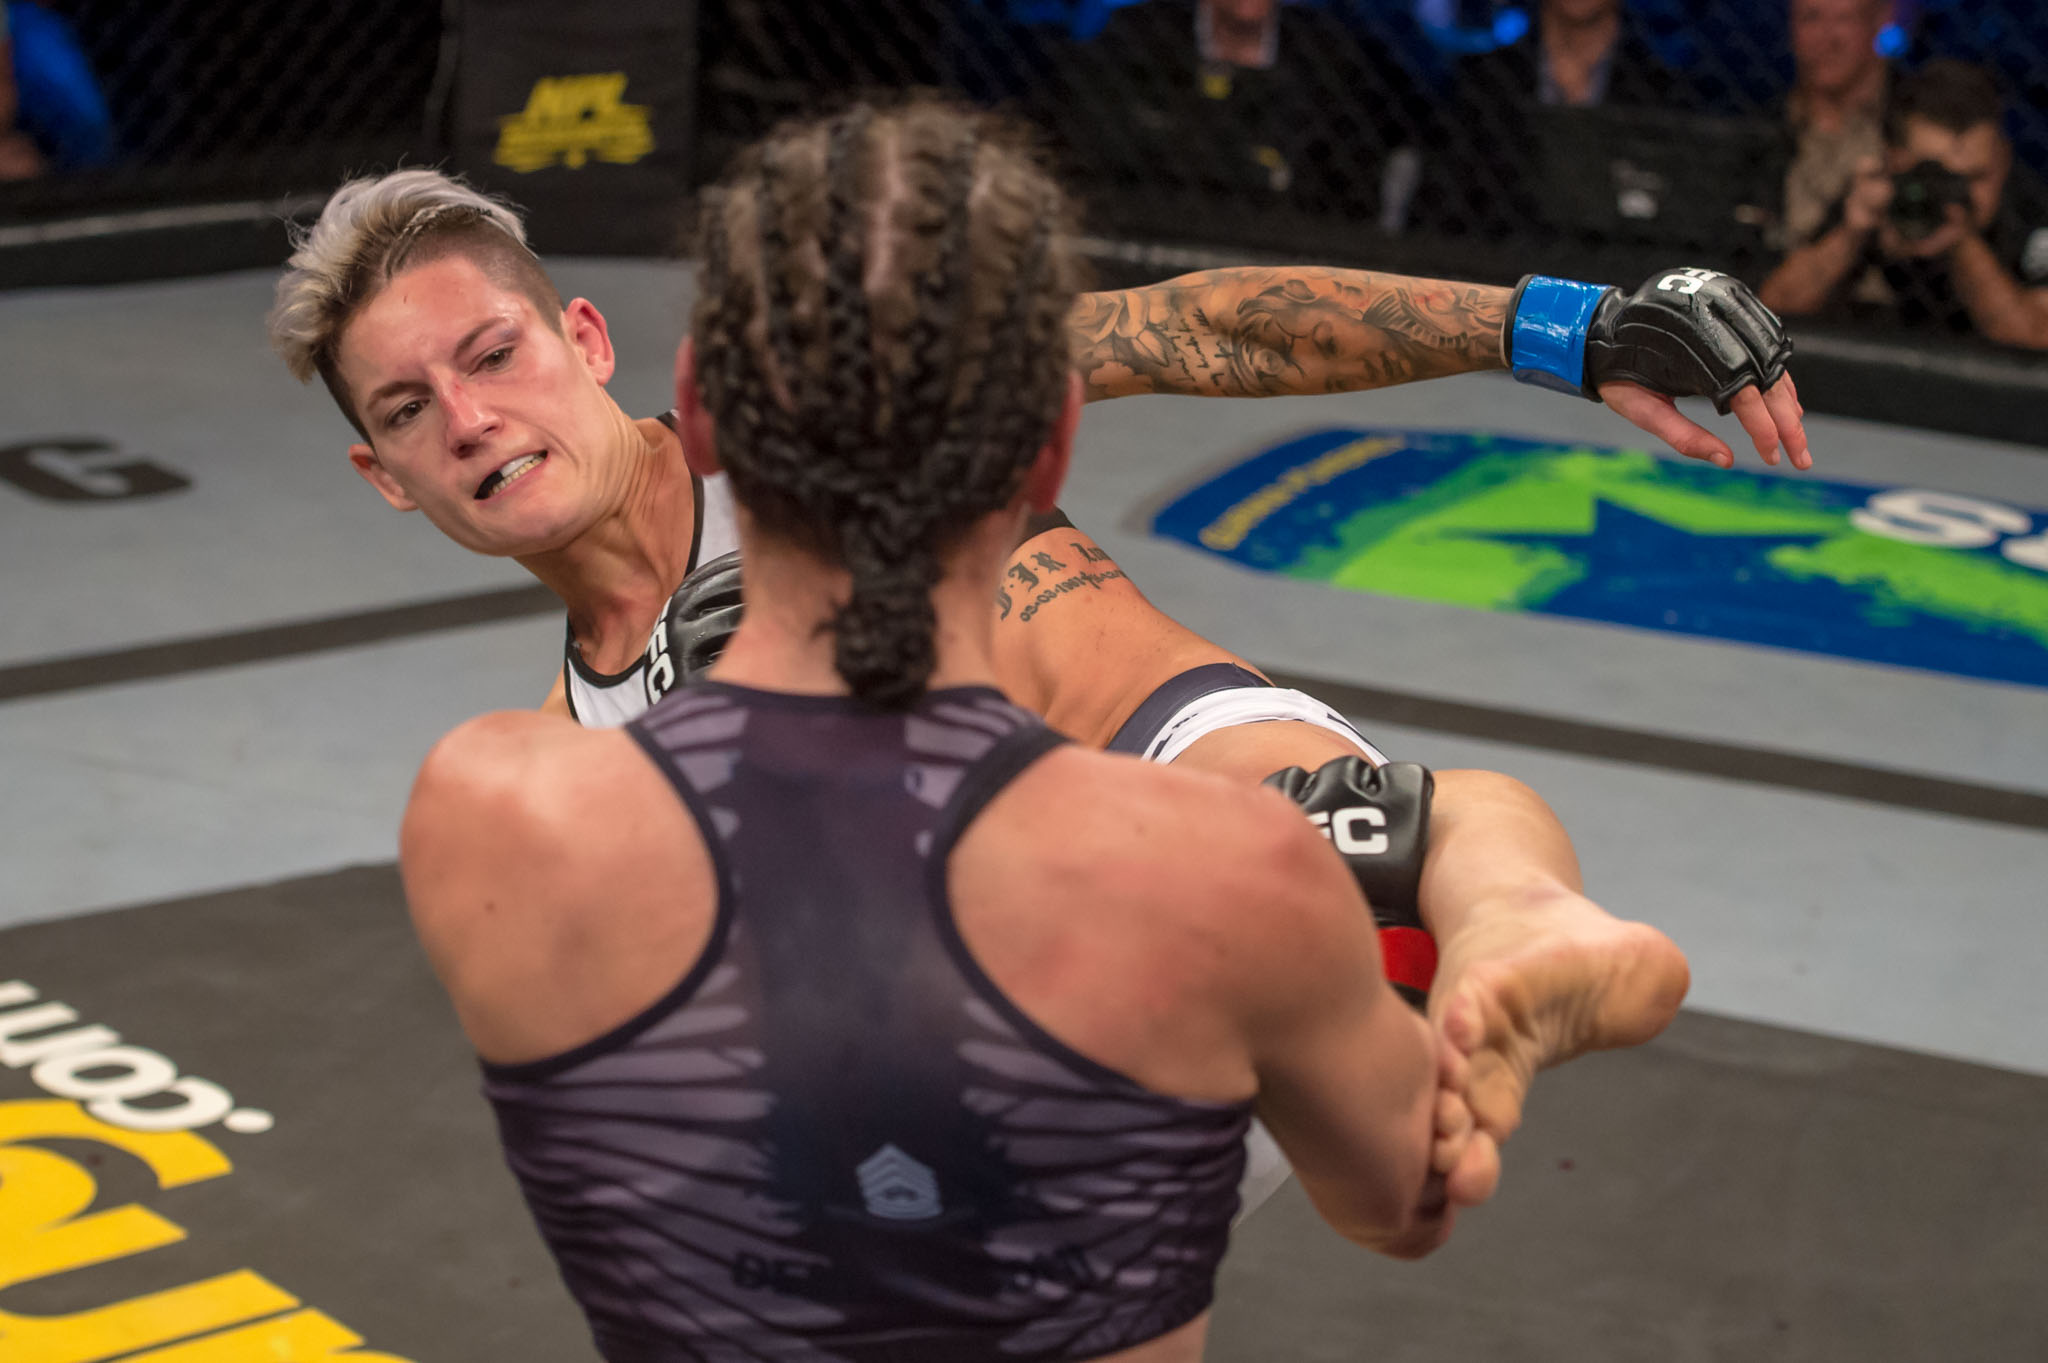 Amanda Lino defeated Jacqualine Trosee at EFC 60 for the inaugural EFC Women's Flyweight title